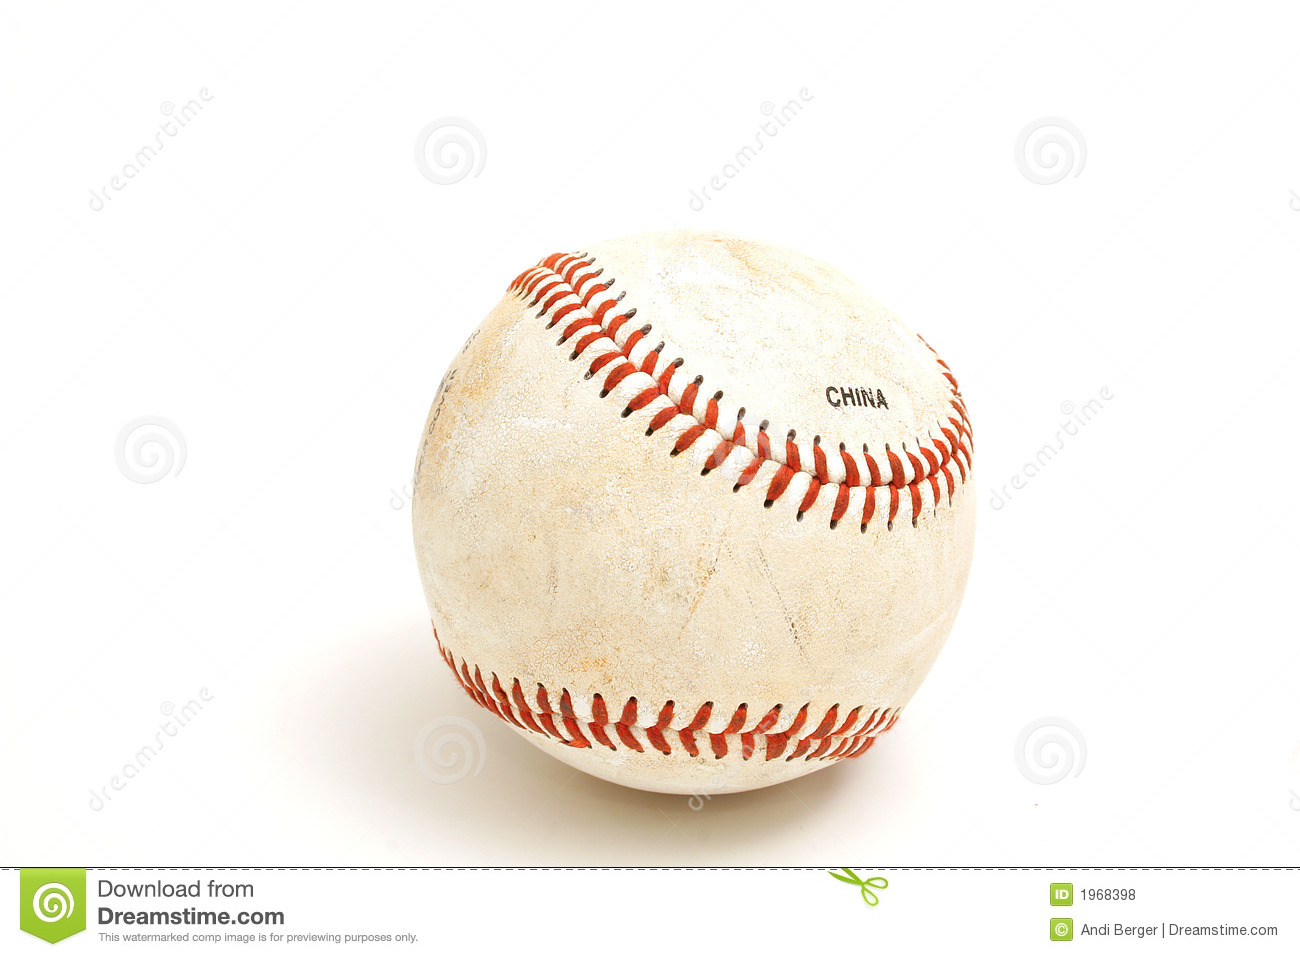 What is a single in baseball